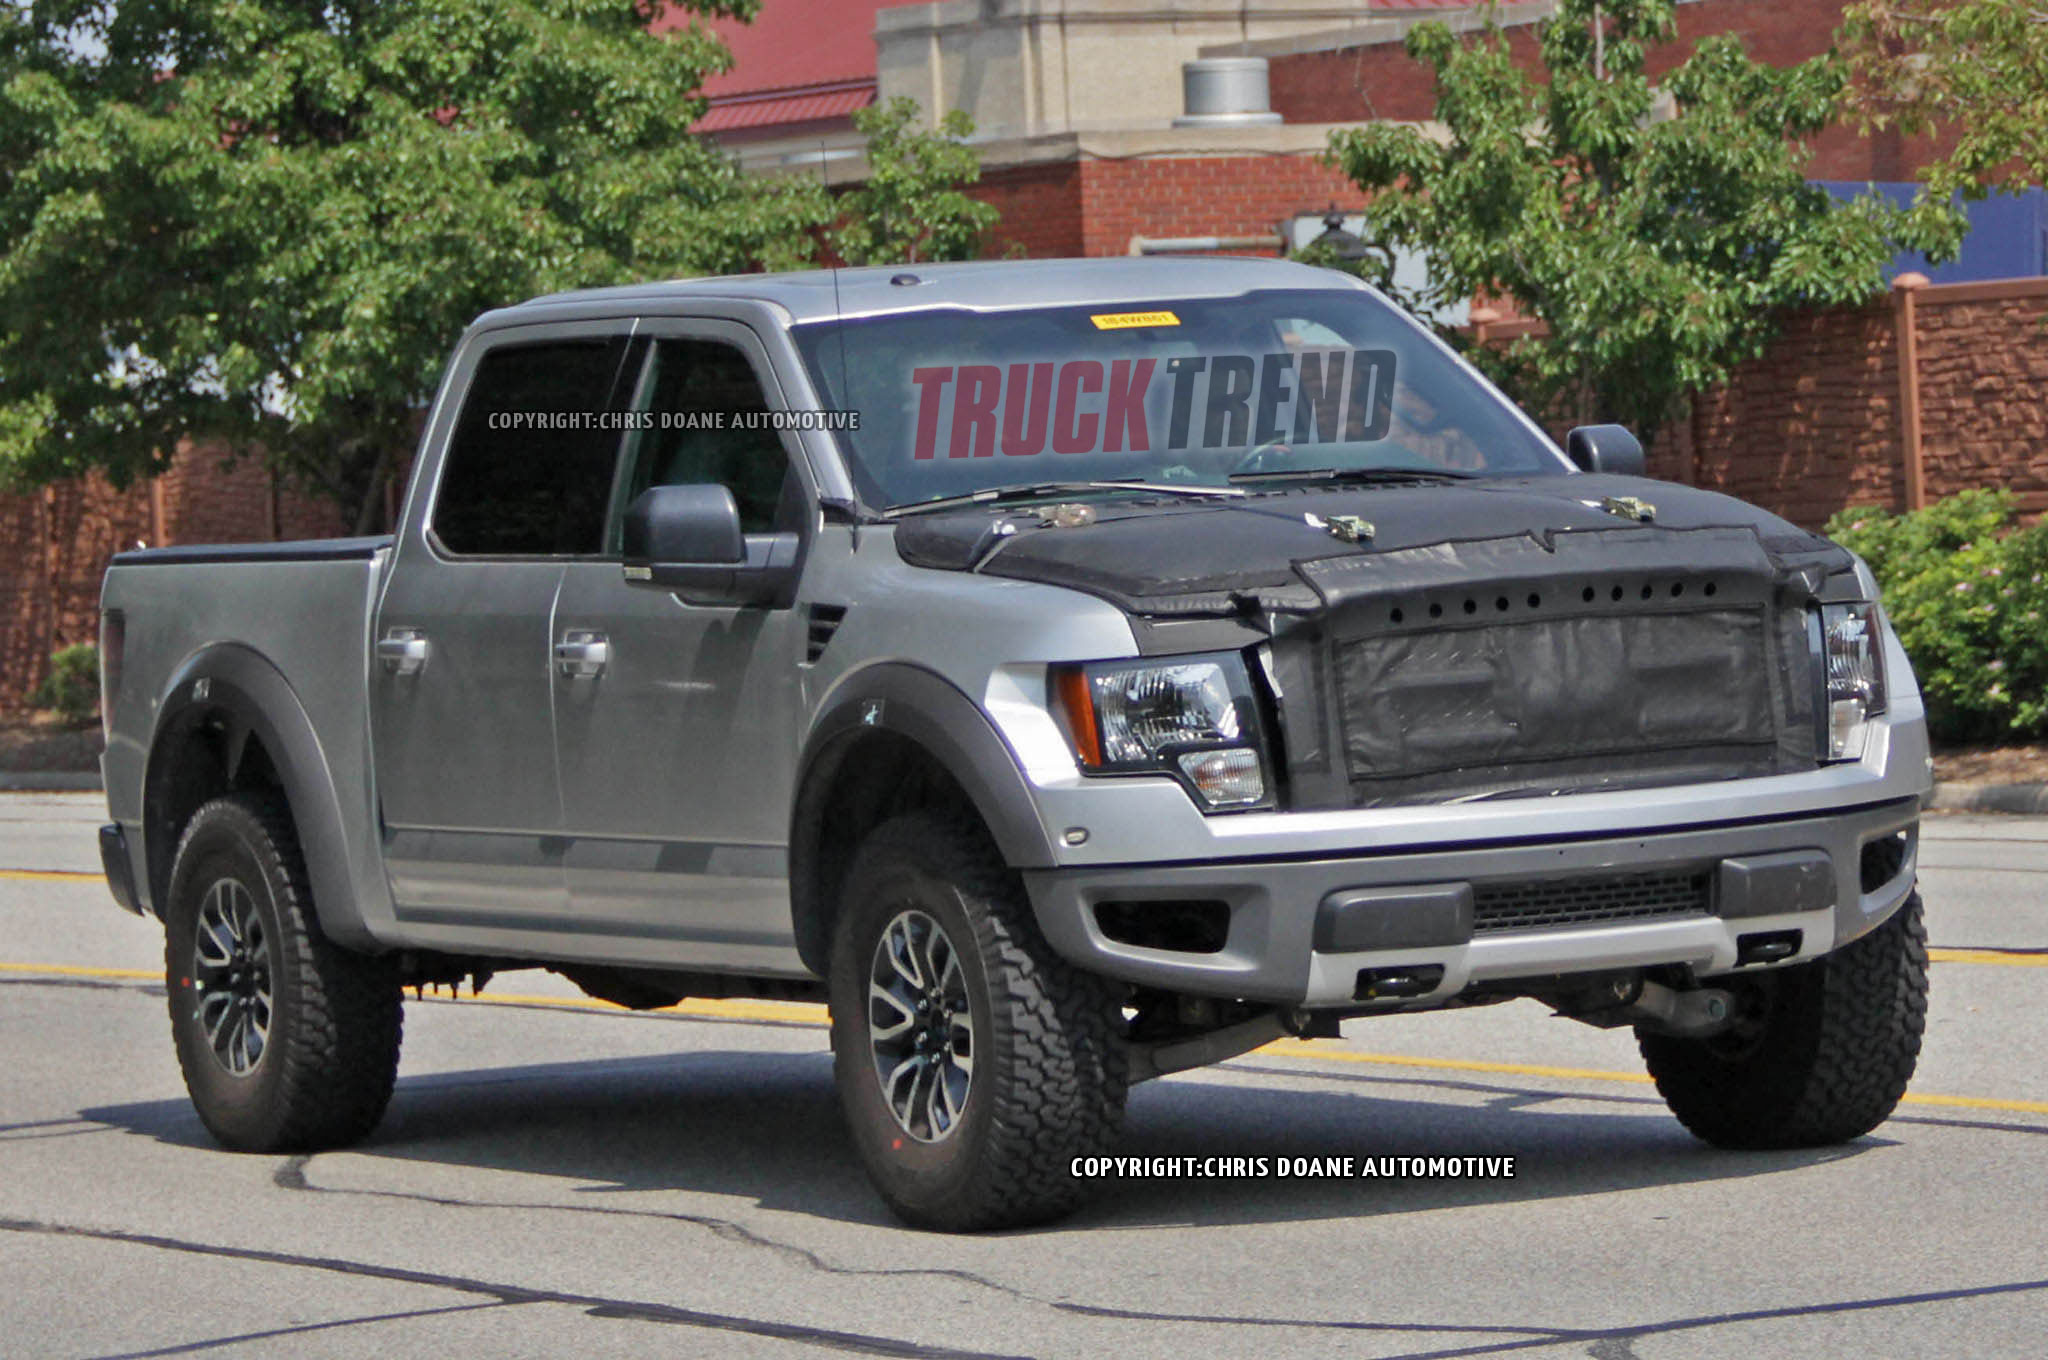 2016 Ford Raptor, while testing in Dearborn